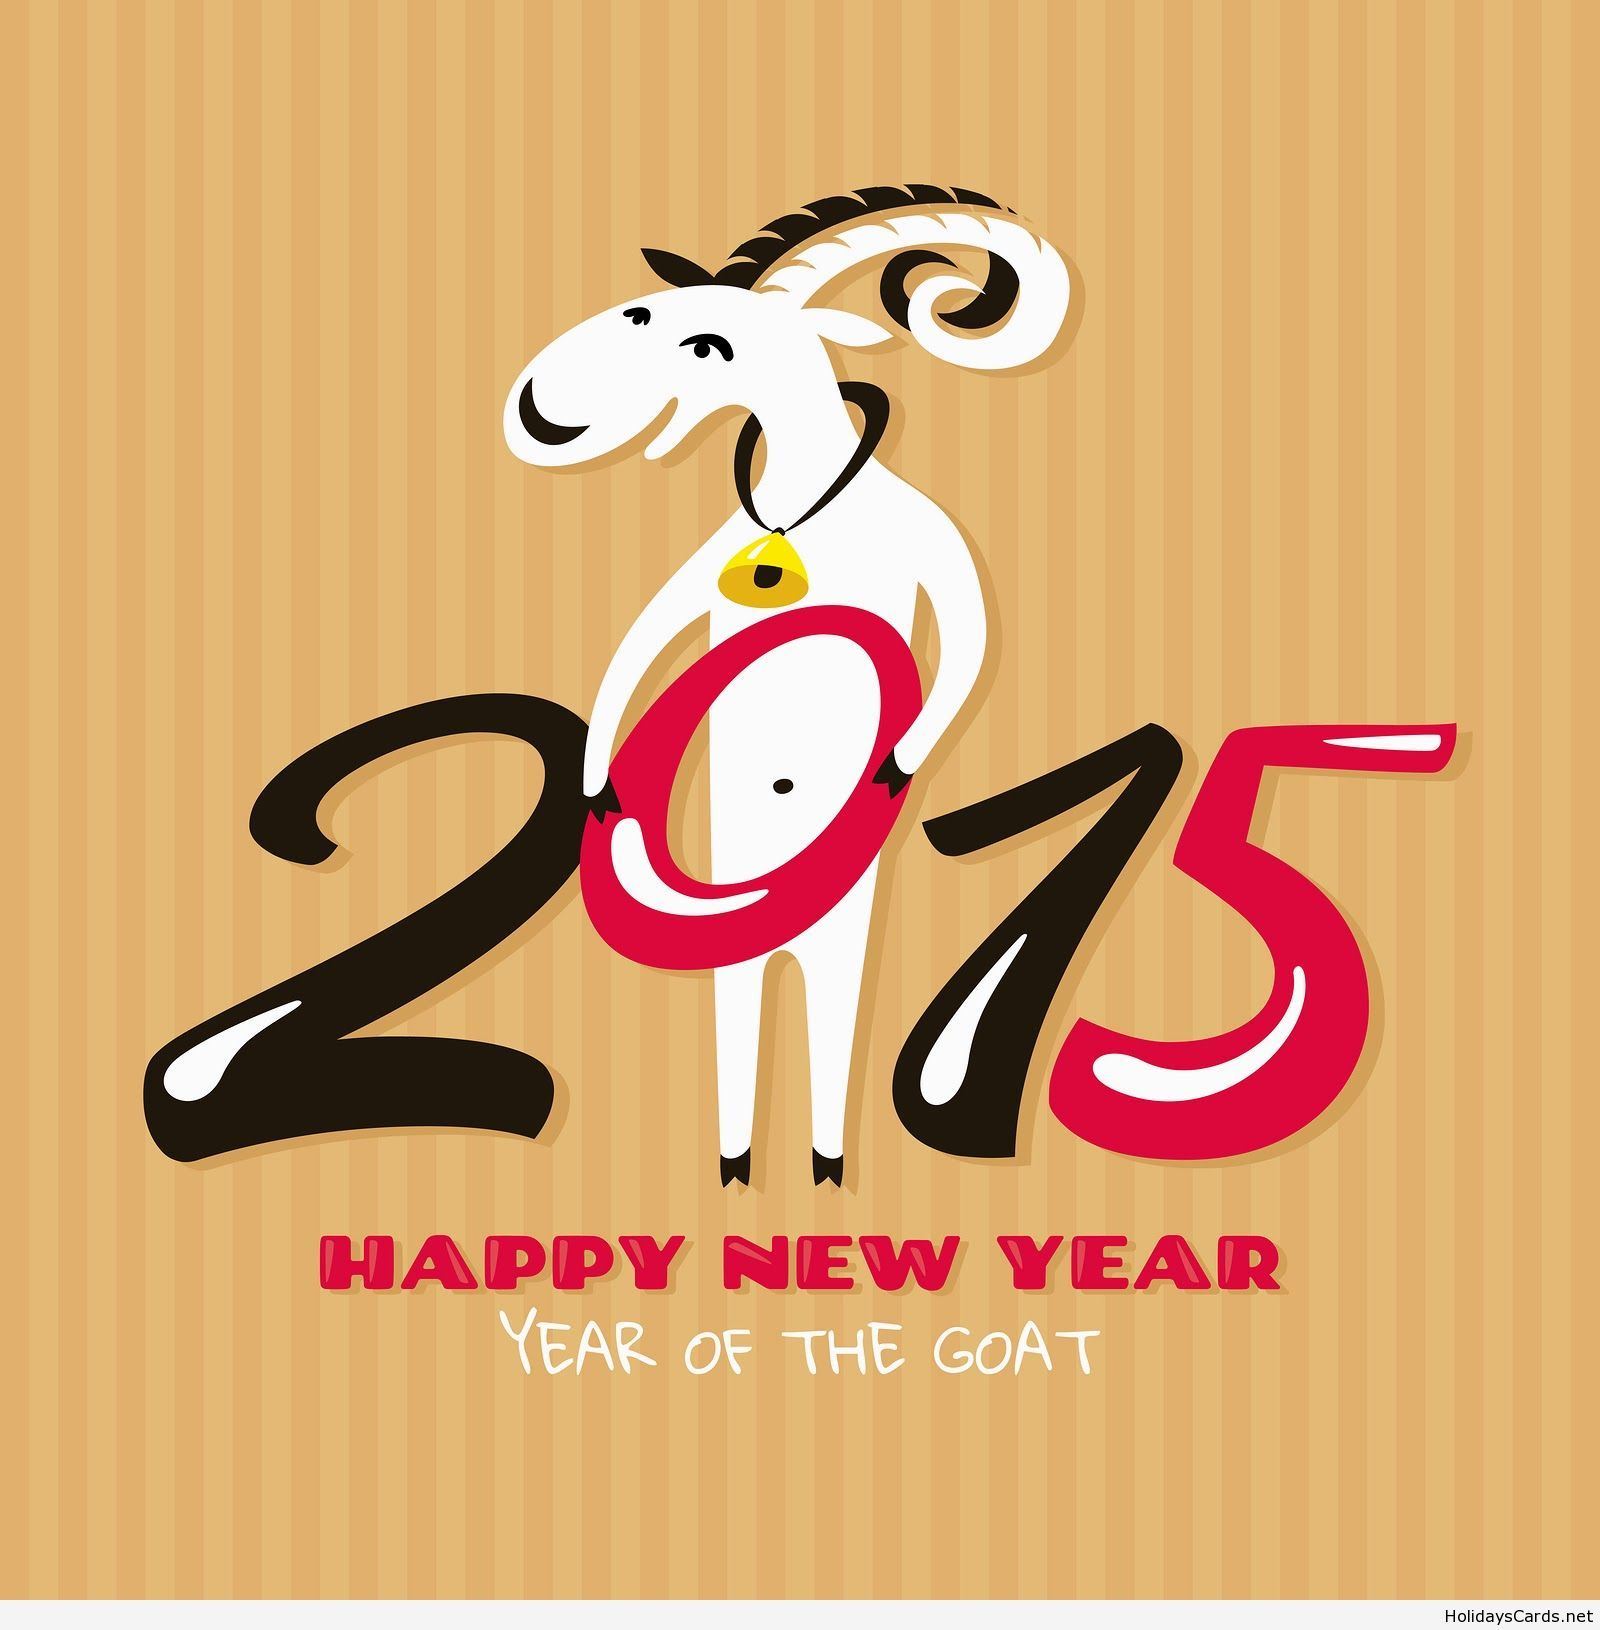 Funny goat year 2015 wallpaper happy new year pinterest chinese new year 2015 greeting cards with goats kristyandbryce Choice Image